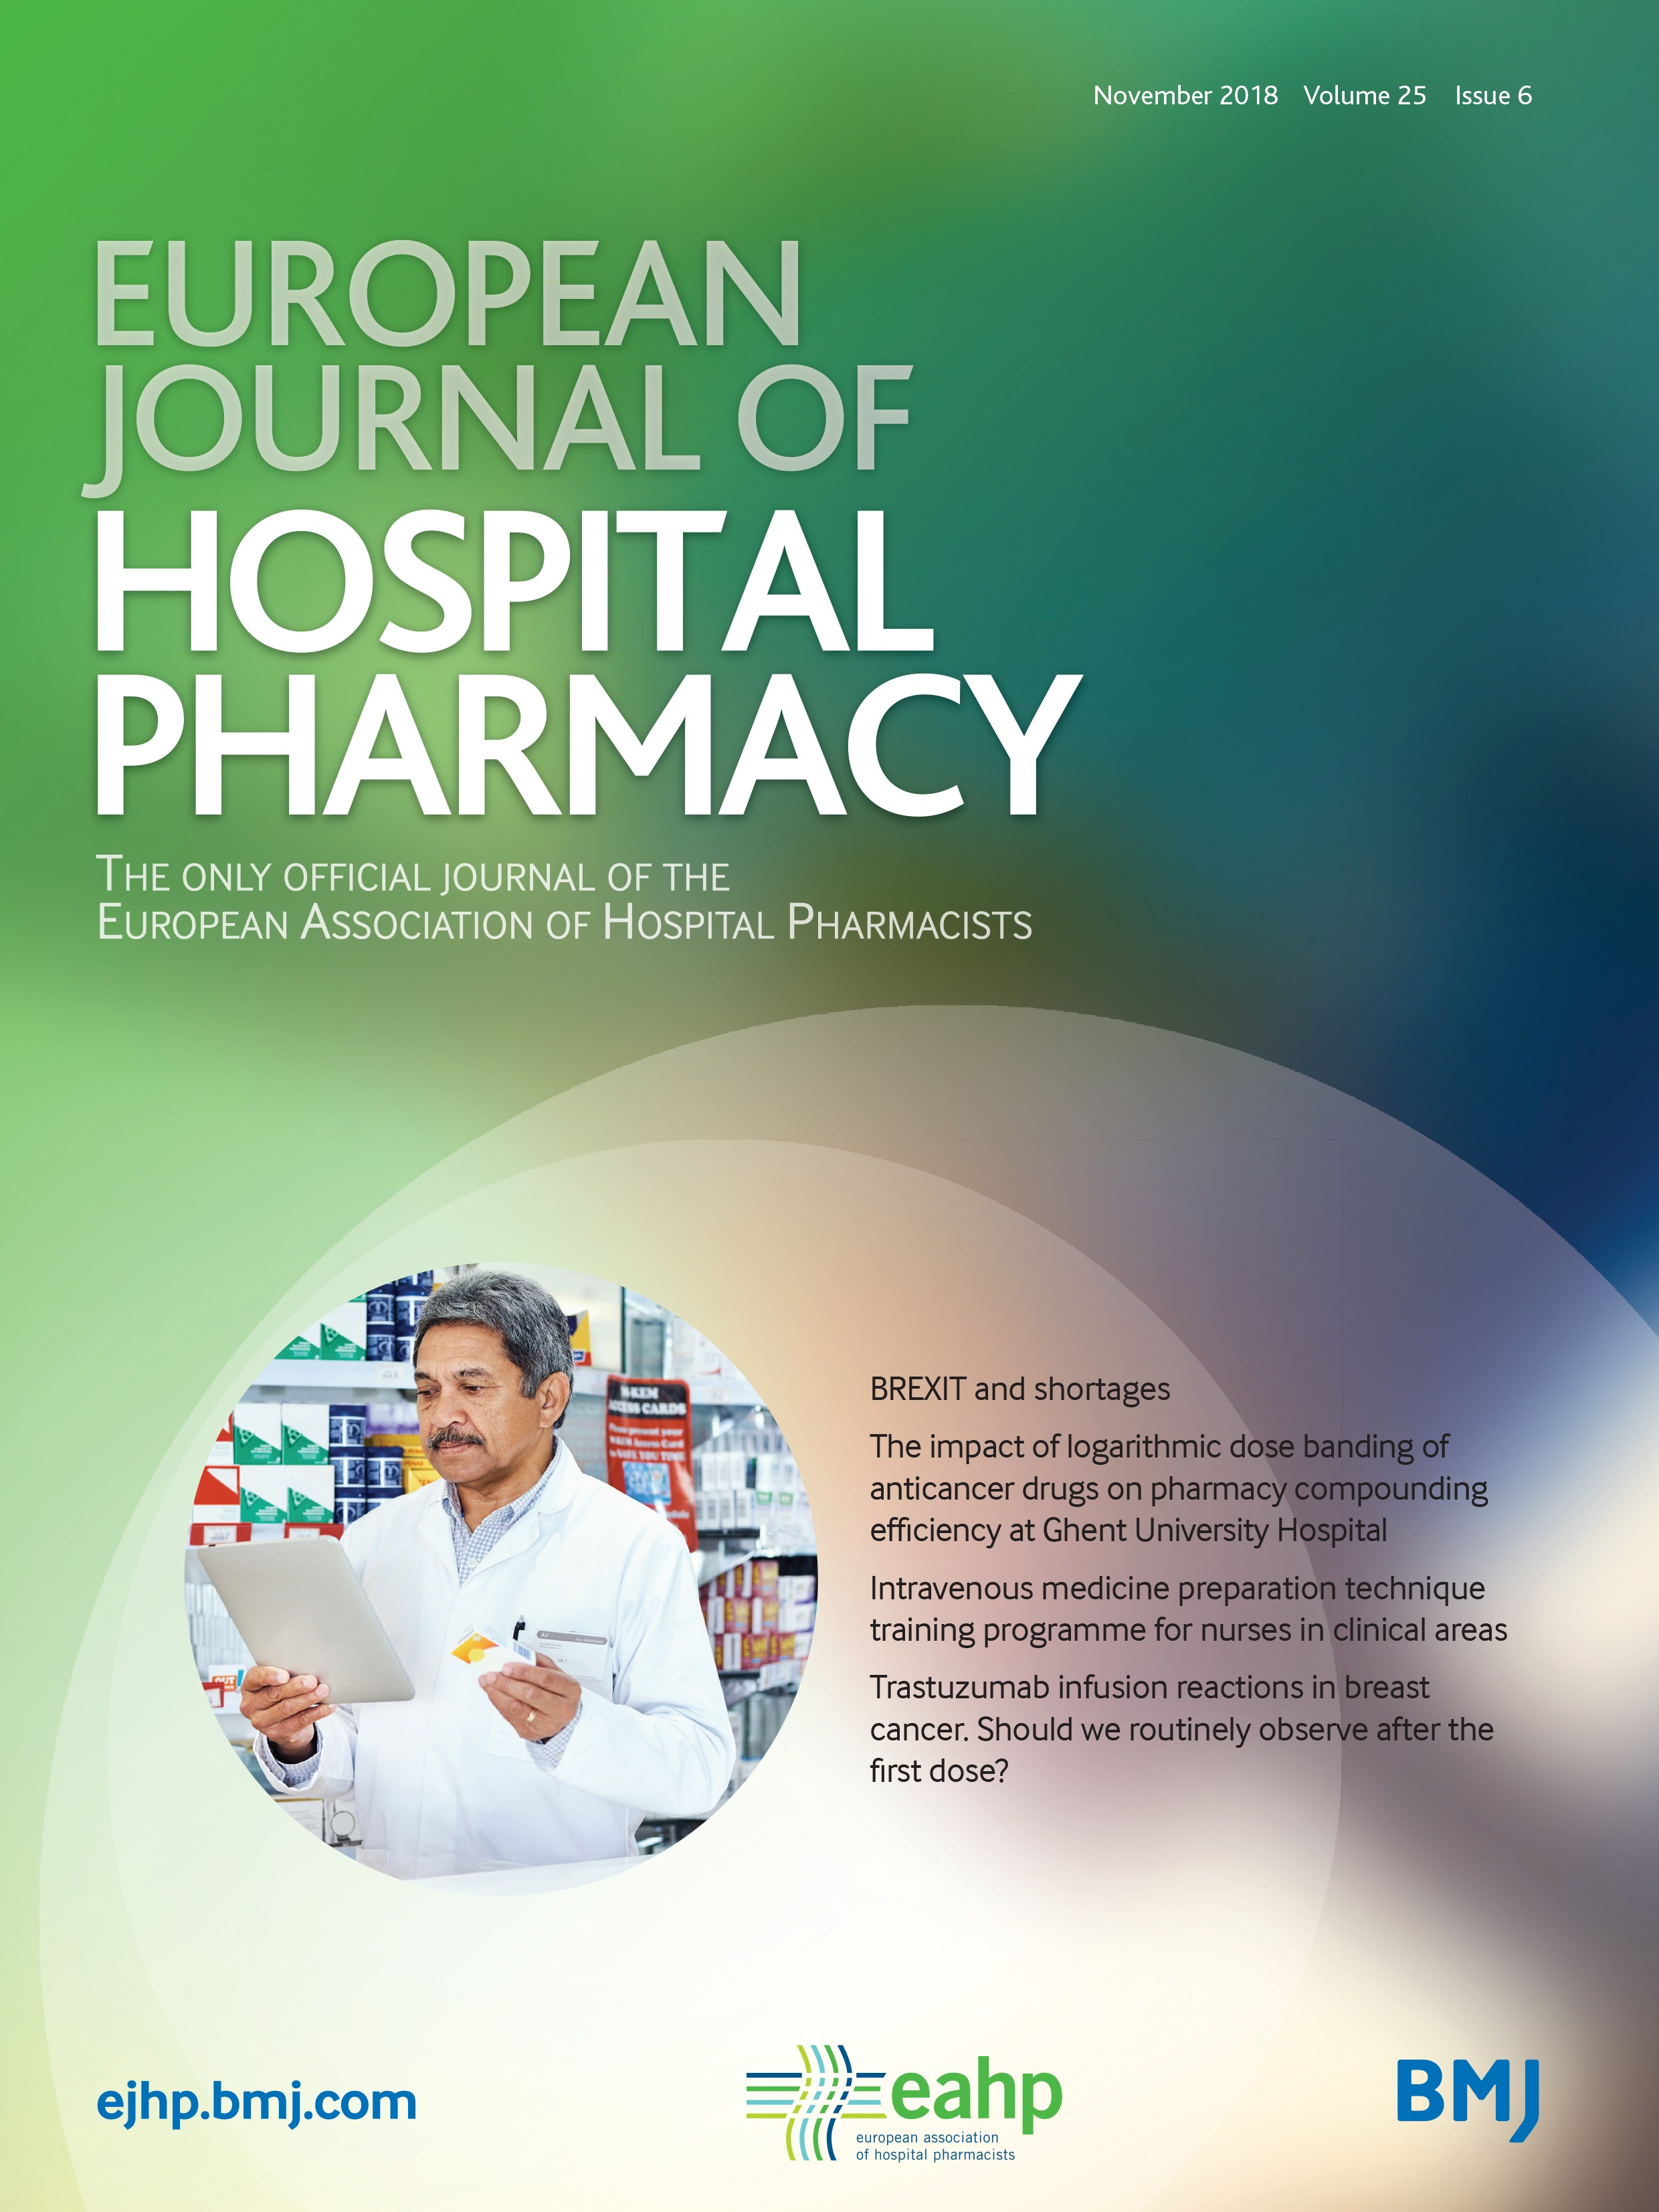 Trastuzumab infusion reactions in breast cancer. Should we routinely  observe after the first dose? | European Journal of Hospital Pharmacy